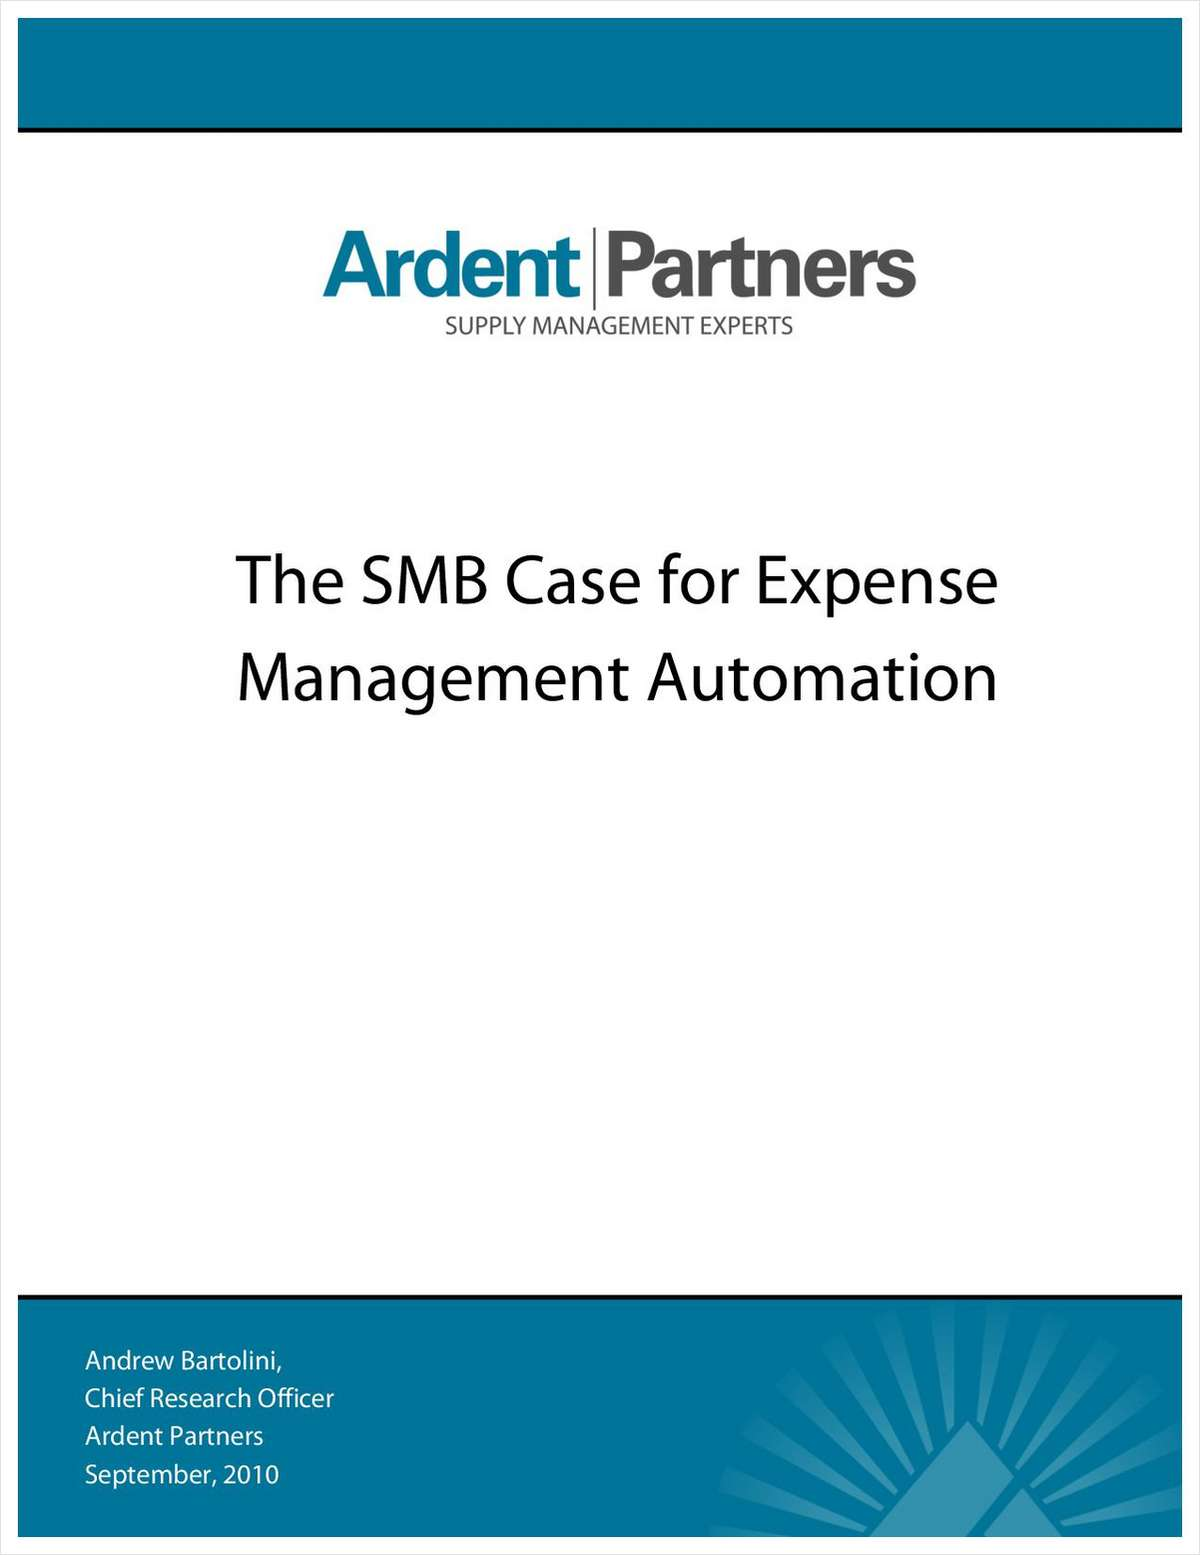 SMB Case for Expense Management Automation